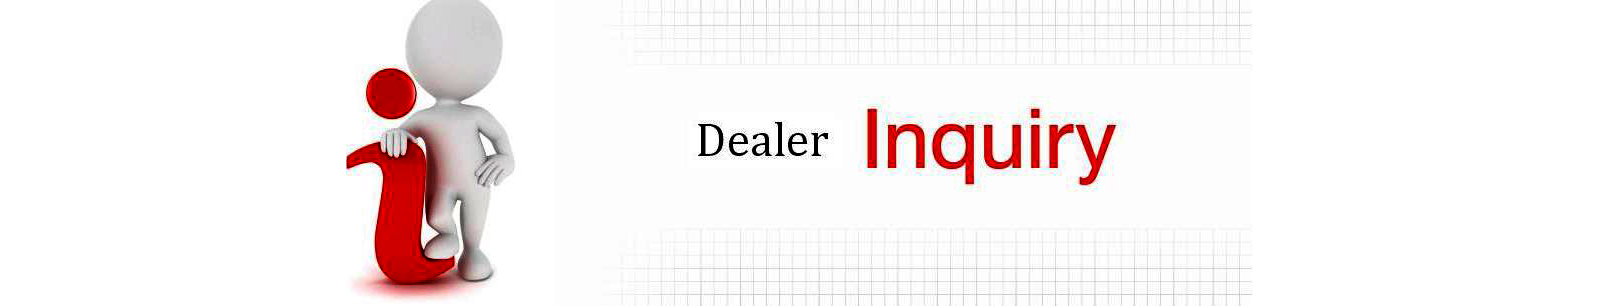 Dealer-inquiry1.jpg